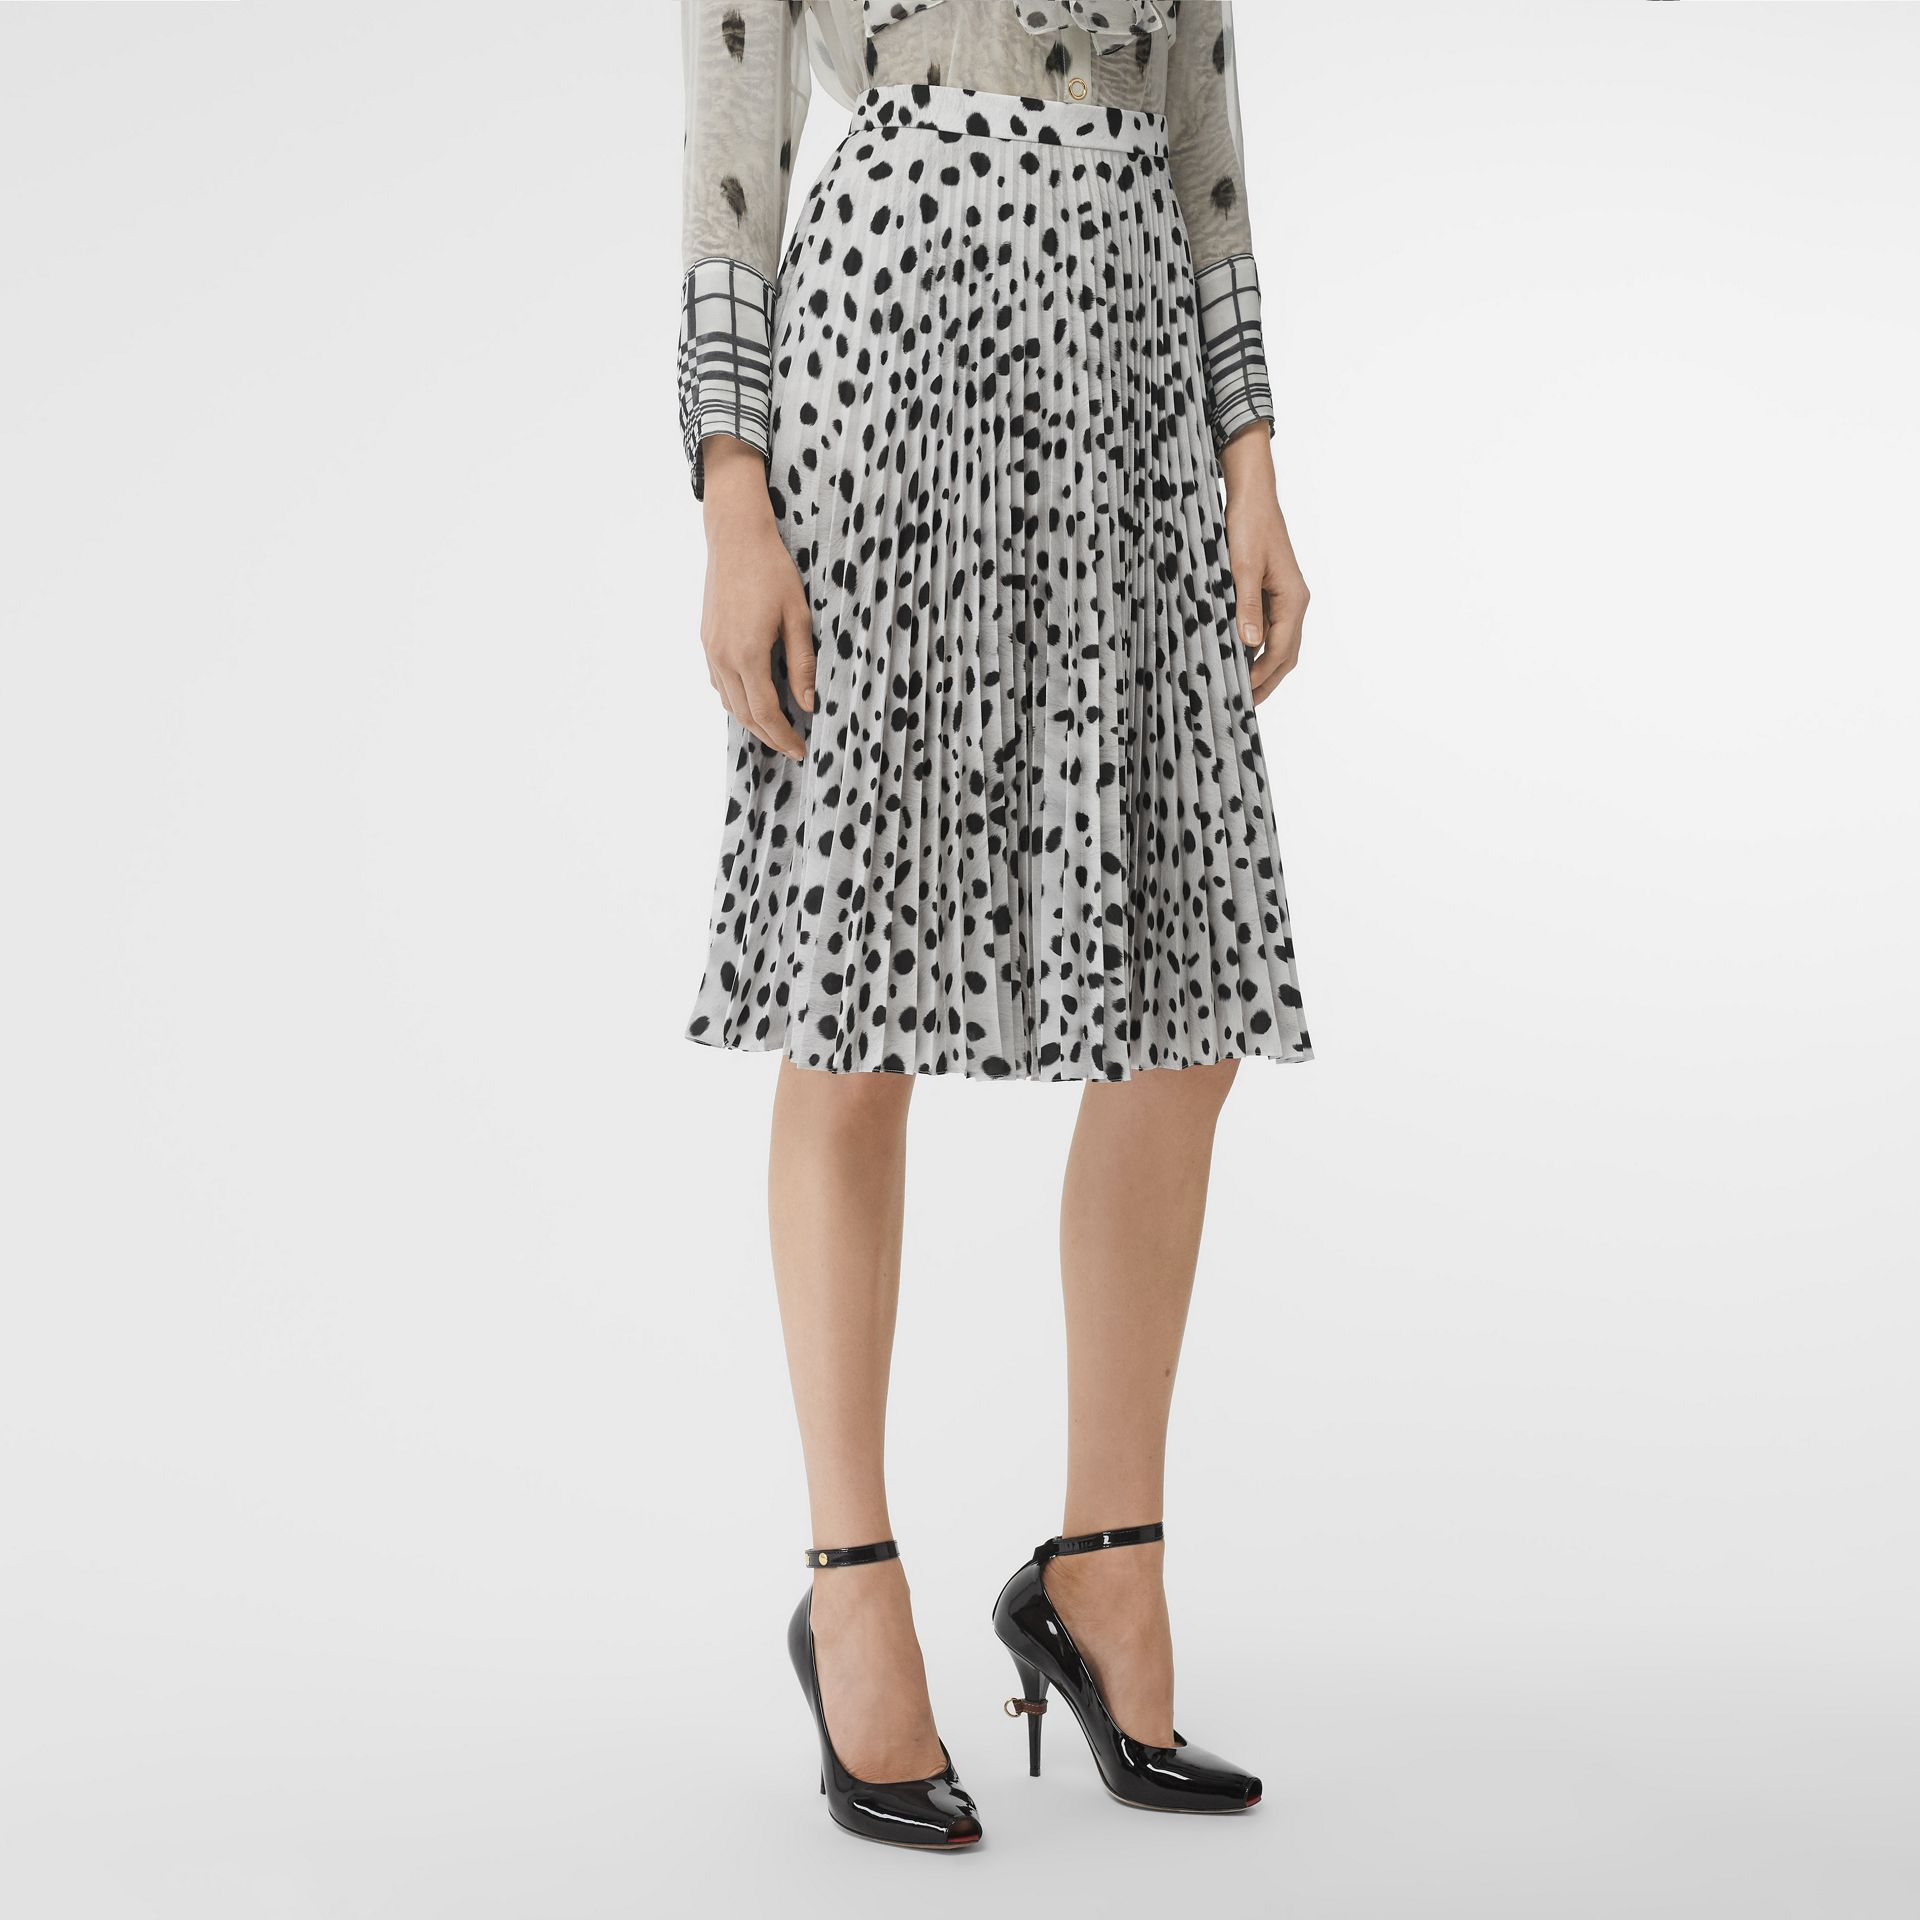 Dalmatian Print Crepe Pleated Skirt in Black/white - Women | Burberry - gallery image 4